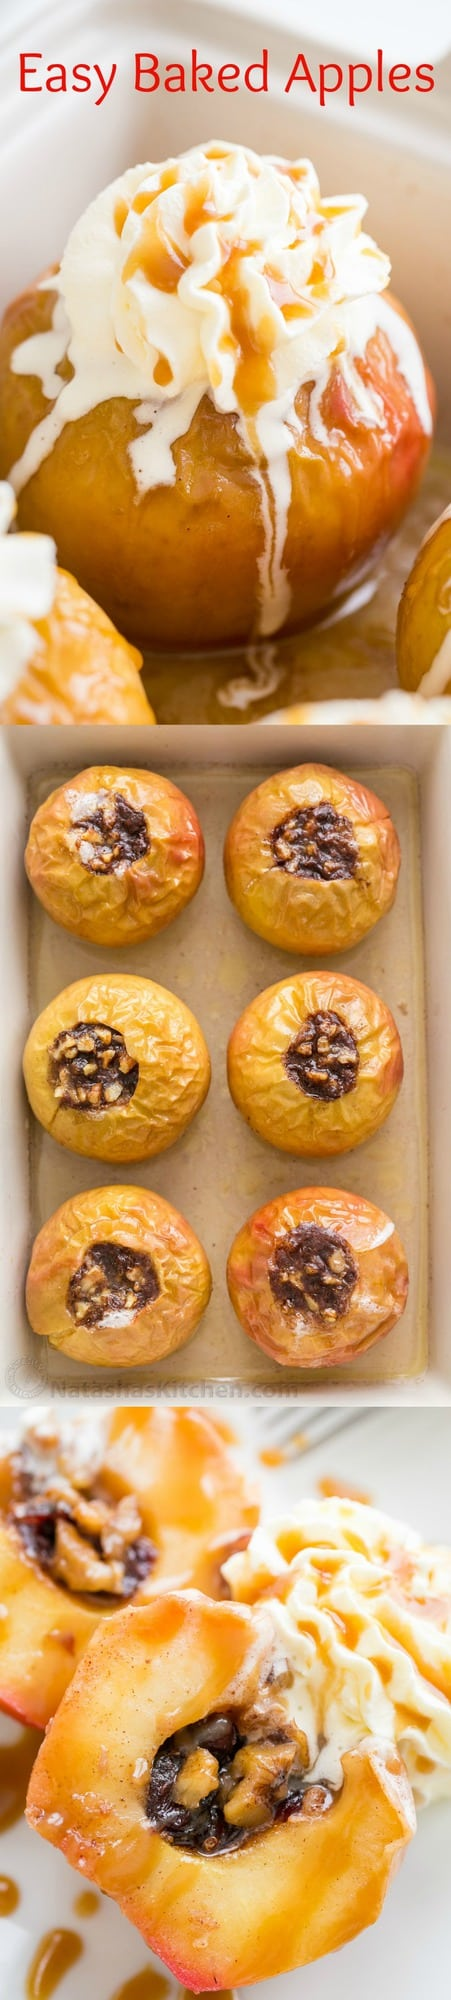 Baked Apples are a real treat and so easy! You will flip over how amazing your house smells as they bake. These baked apples taste like apple pie...Mmm!! | natashaskitchen.com